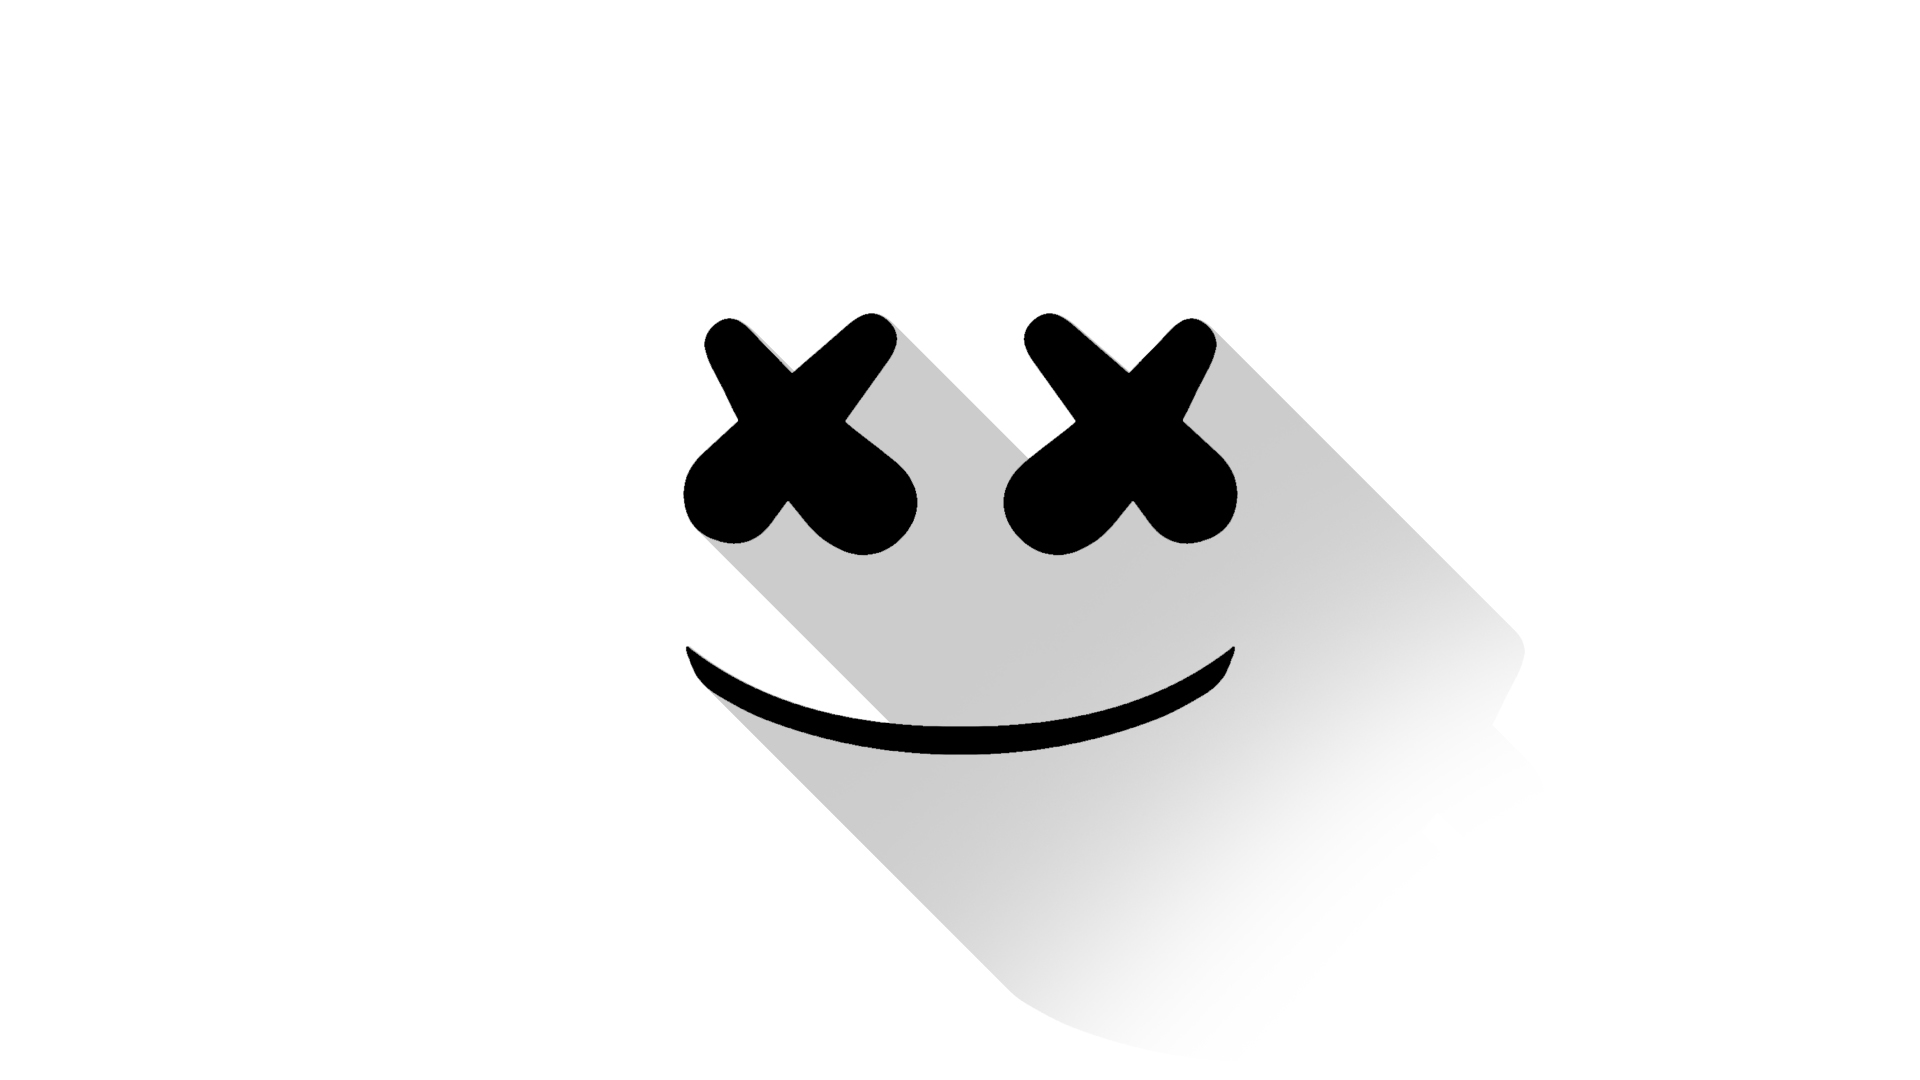 Marshmello Dj Material Design Logo Hd Music 4k Wallpapers Images